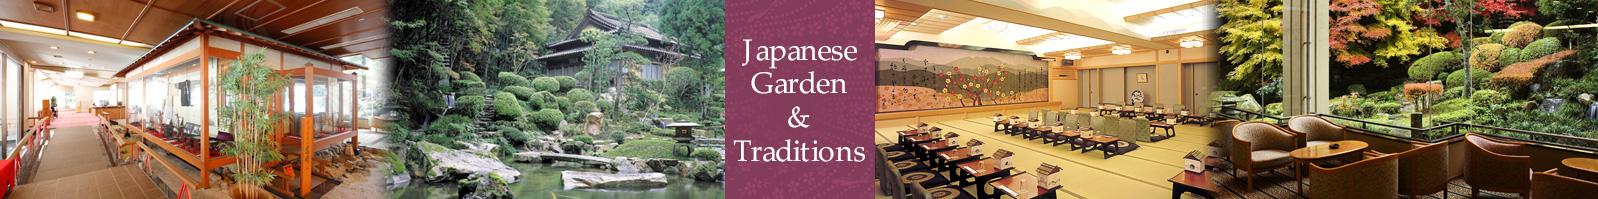 JAPANESE GARDEN & TRADITIONS